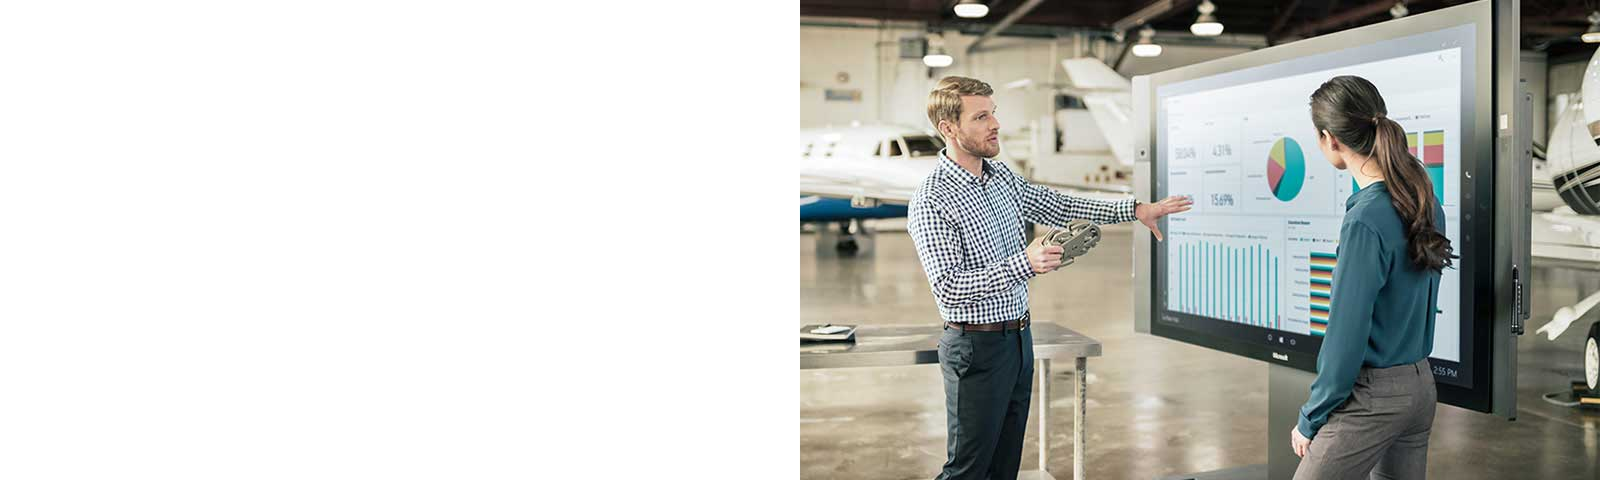 Man and woman working on Surface Hub in airplane hangar